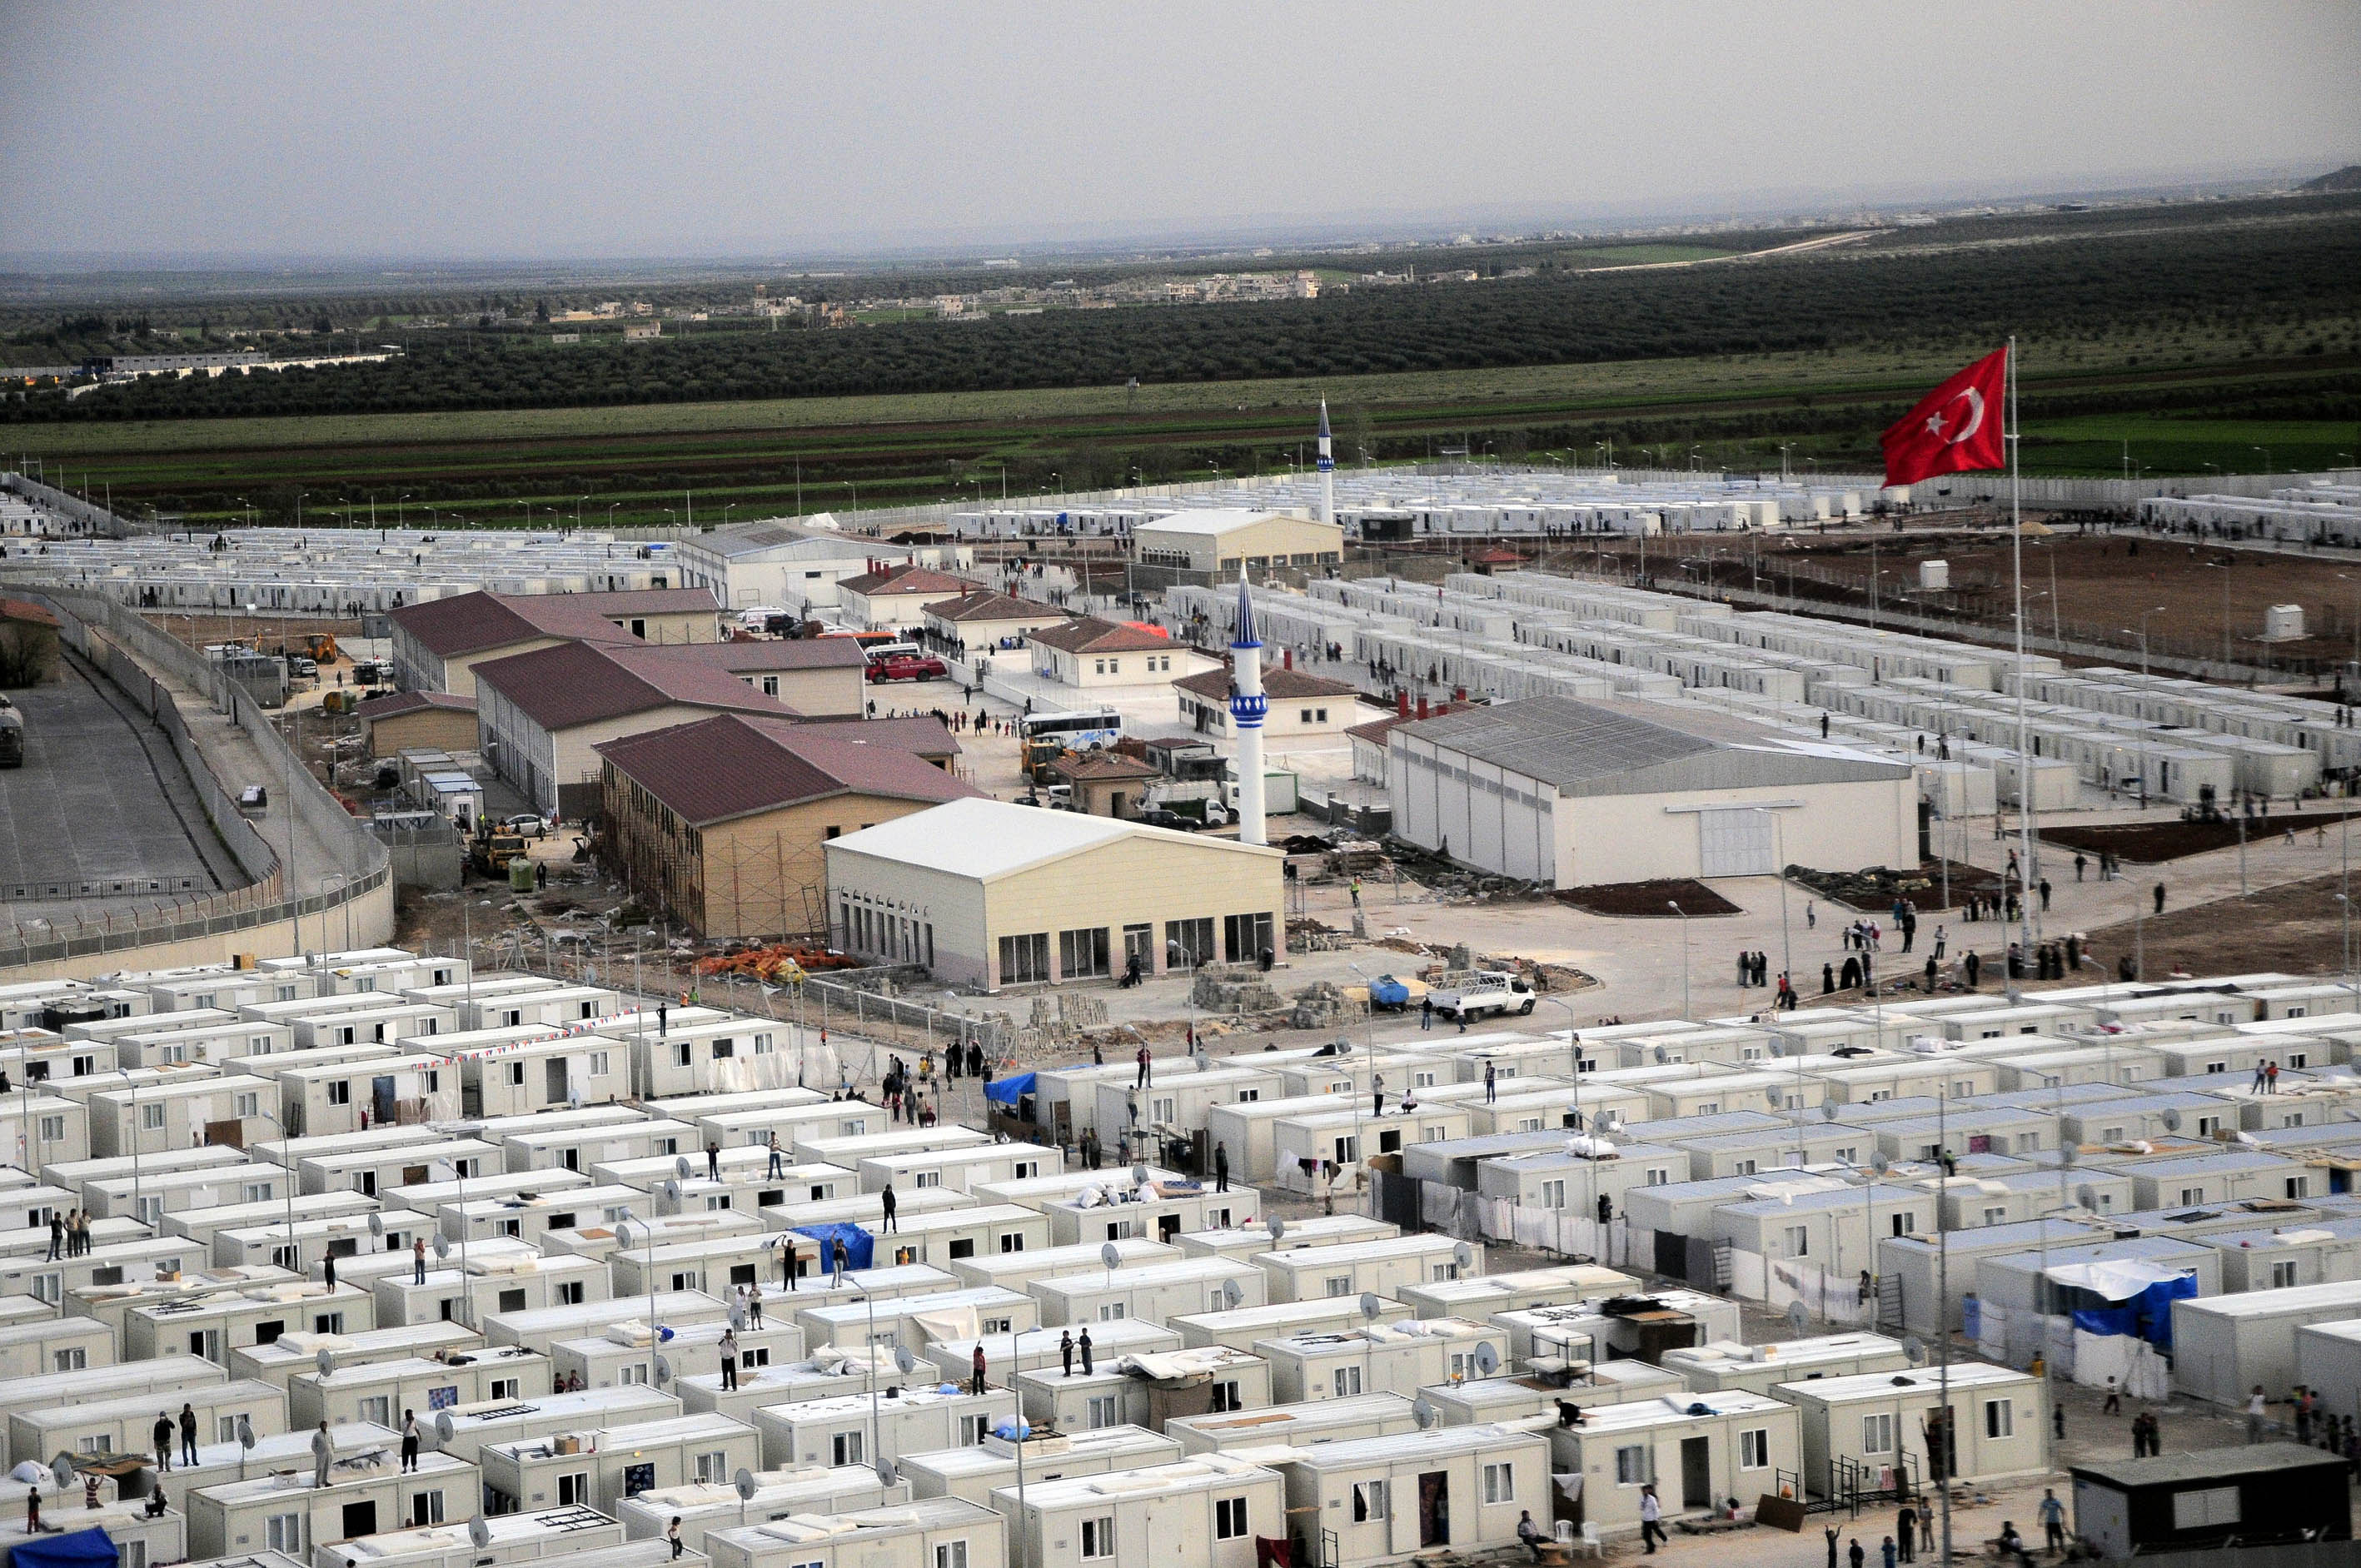 Refugee Camps: Potential Grounds for Startup Societies?